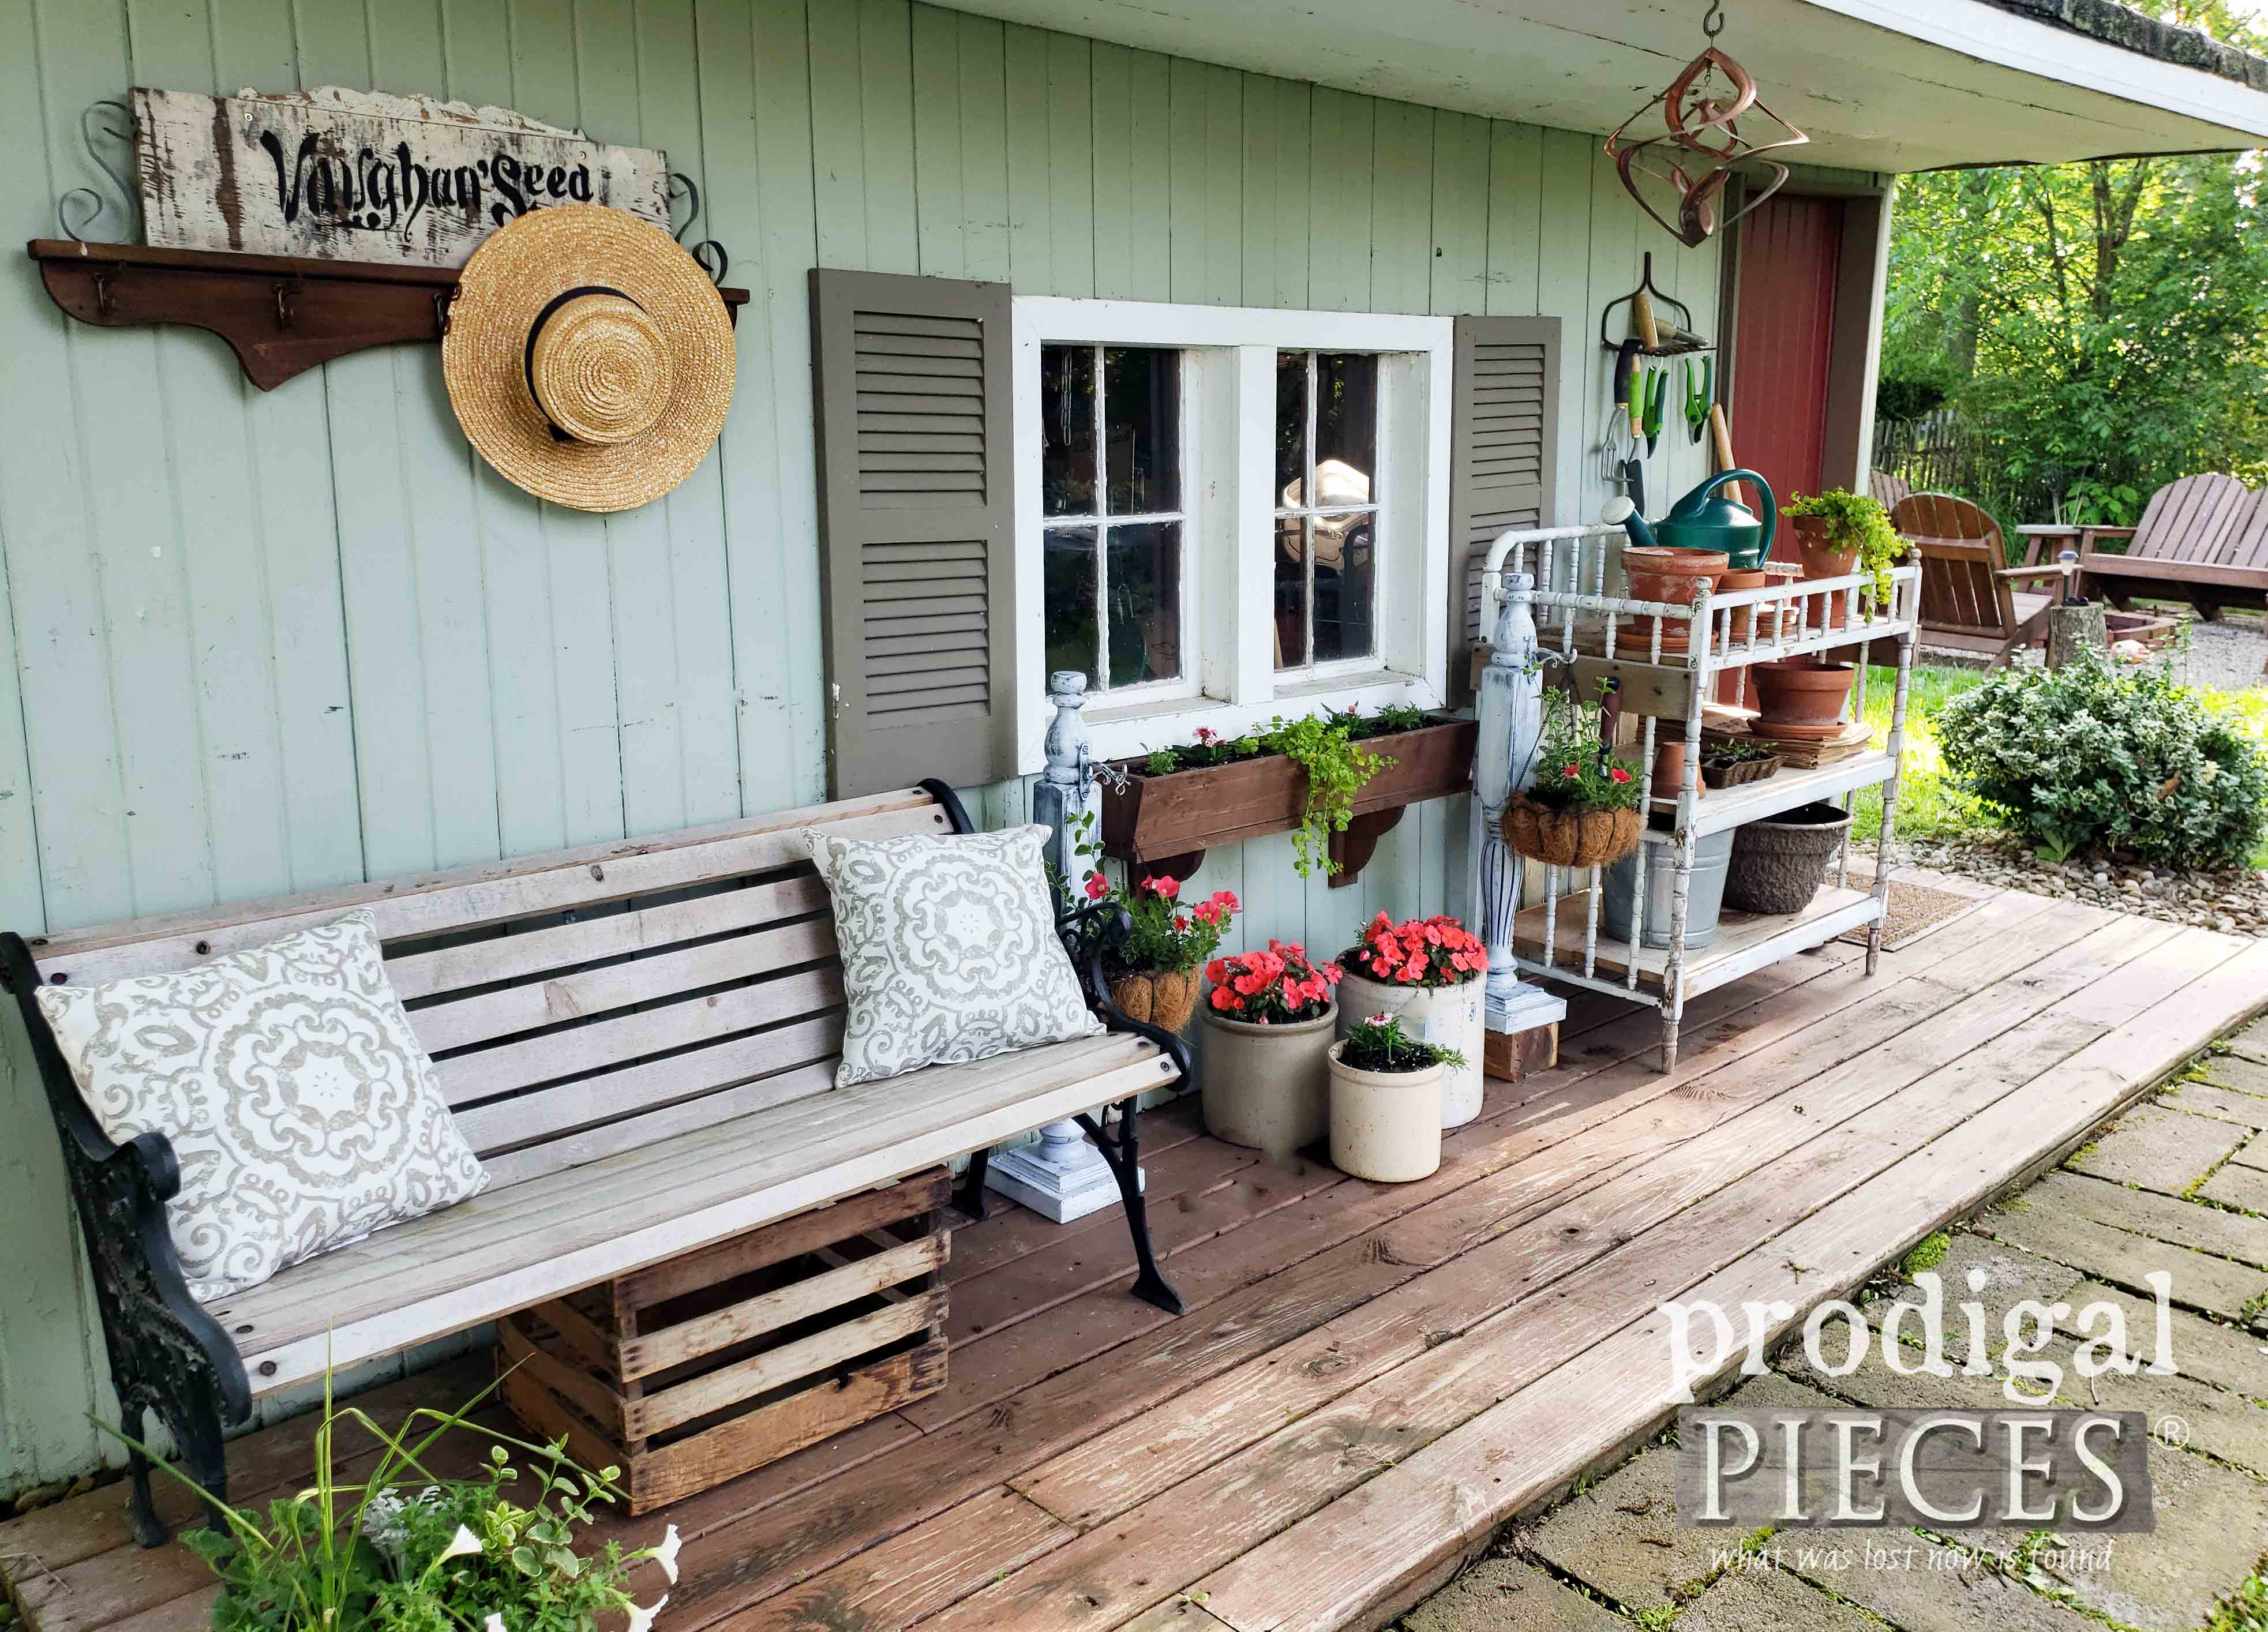 Backyard Garden Shed Decor Made from Upcycled Finds by Larissa of Prodigal Pieces | prodigalpieces.com #prodigalpieces #diy #home #homedecor #garden #summer